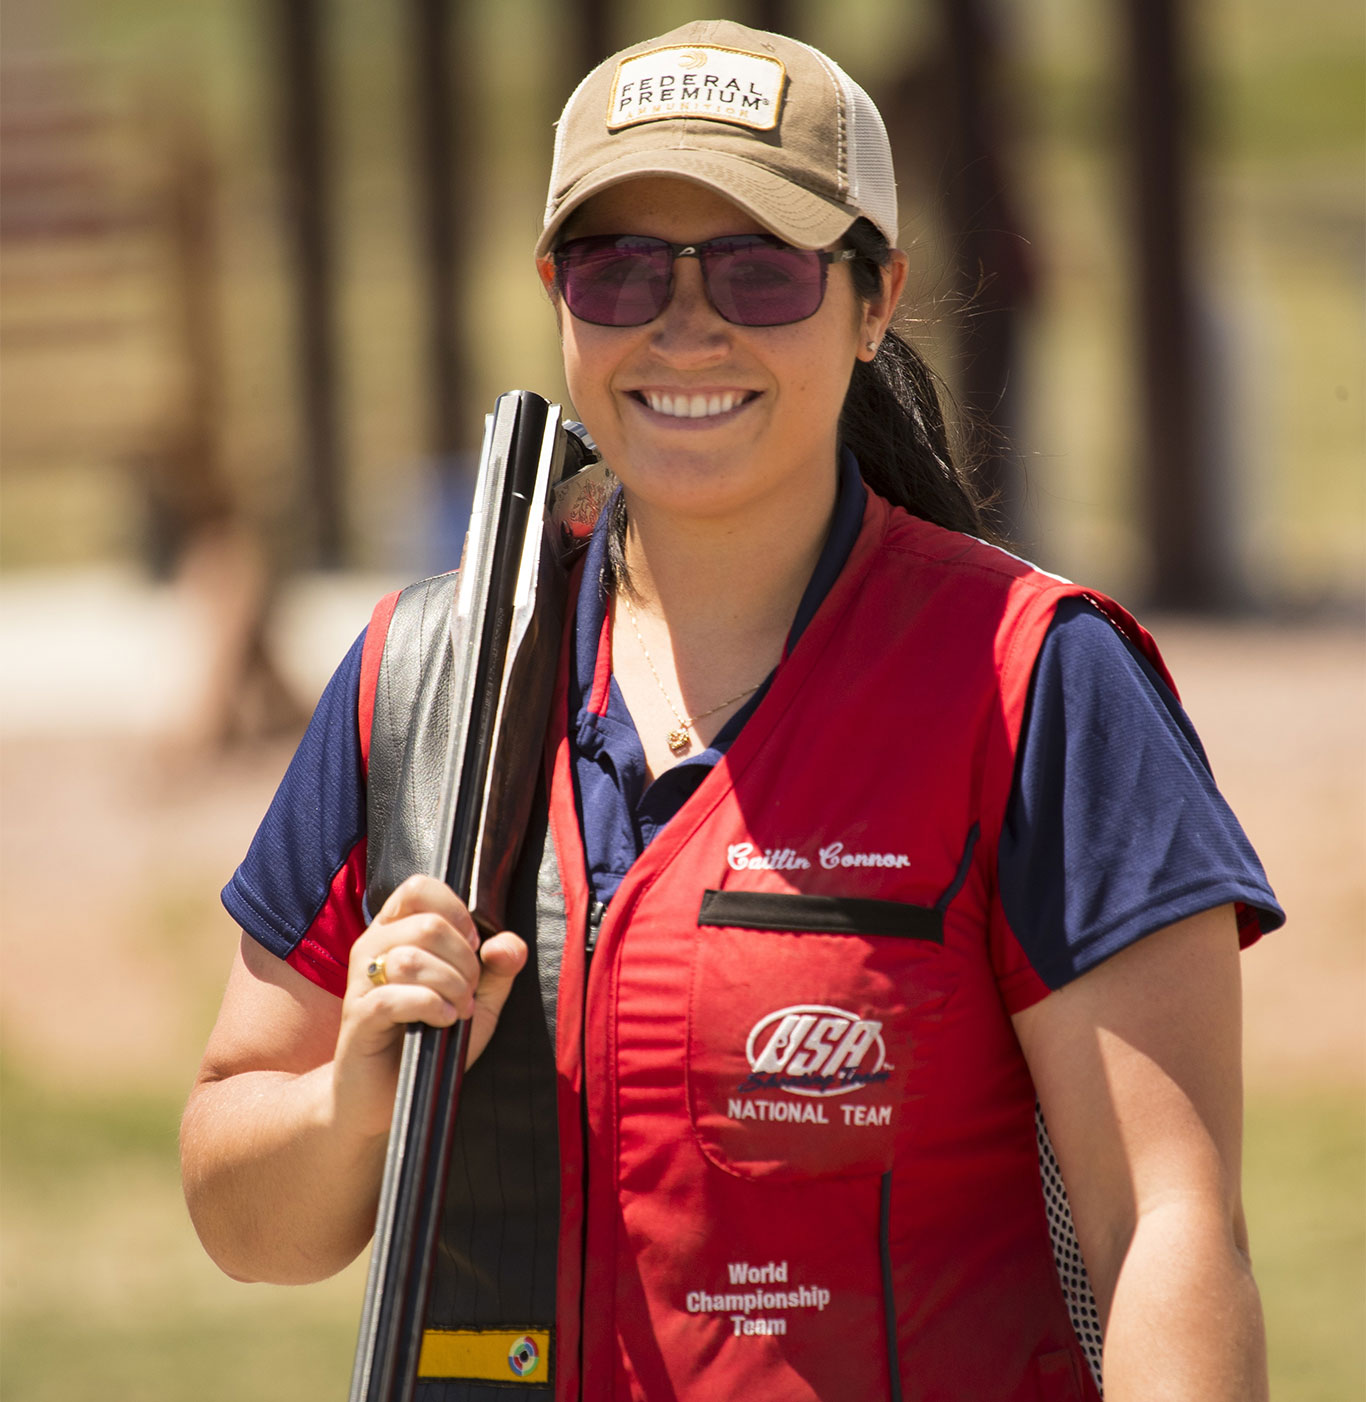 Federal Premium Ammunition sponsored shooter and world champion, Caitlin Connor.